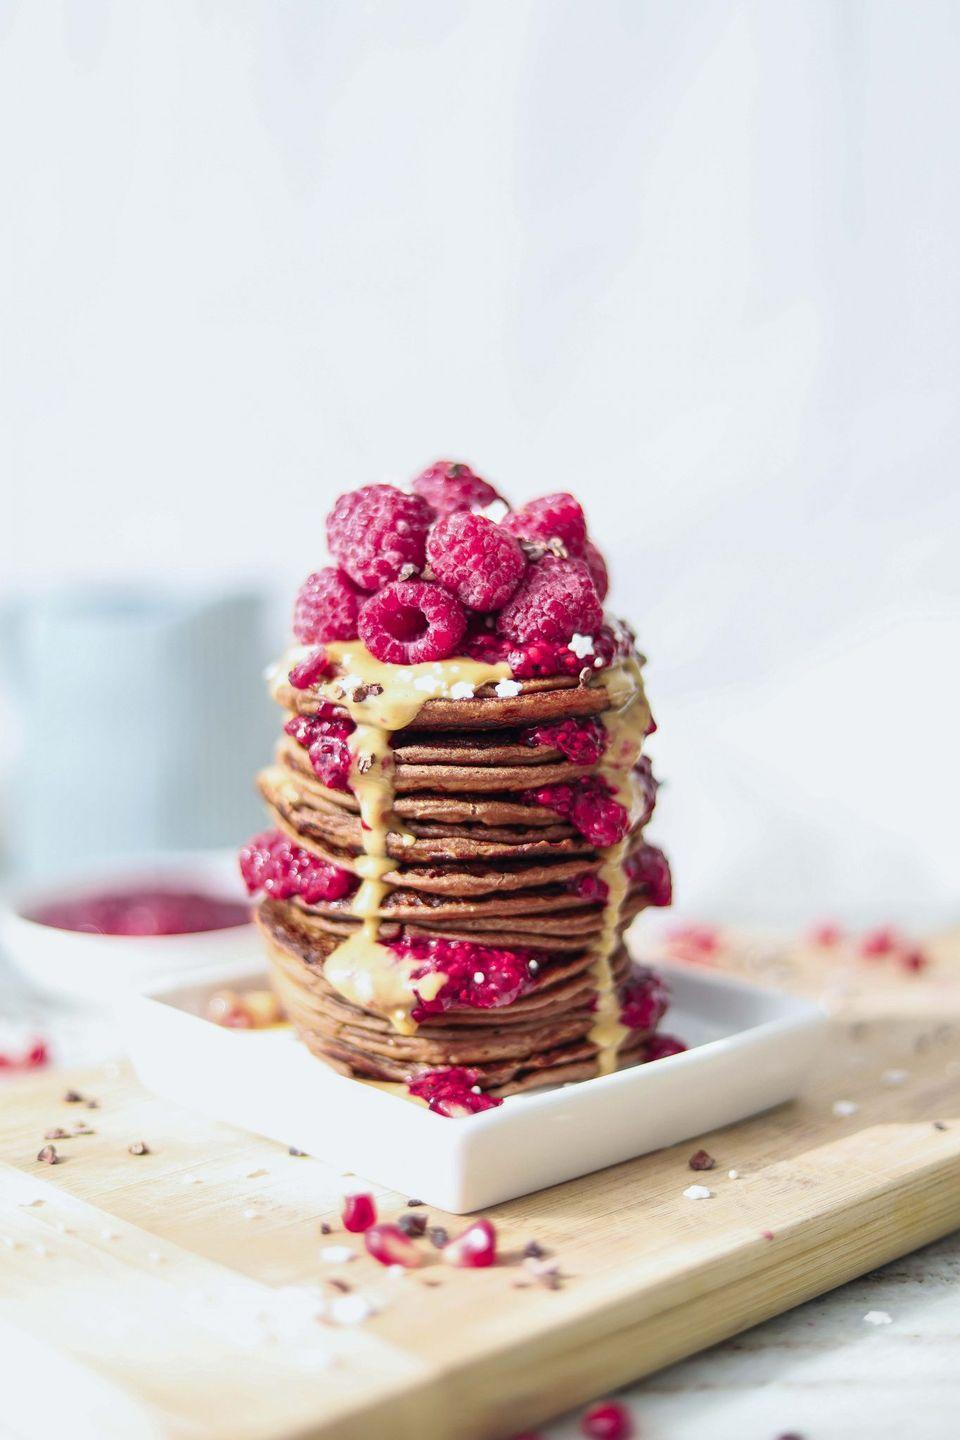 """<p>Fresh, juicy raspberries? Check. Healthy fat-packed chia seeds for added crunch? Check. Moist, vegan-friendly pancakes? Triple check. This is a recipe for success.</p><p>Try the recipe for yourself: <a class=""""link rapid-noclick-resp"""" href=""""https://www.twospoons.ca/recipe/healthy-vegan-protein-pancakes/"""" rel=""""nofollow noopener"""" target=""""_blank"""" data-ylk=""""slk:twospoons.ca"""">twospoons.ca</a></p>"""